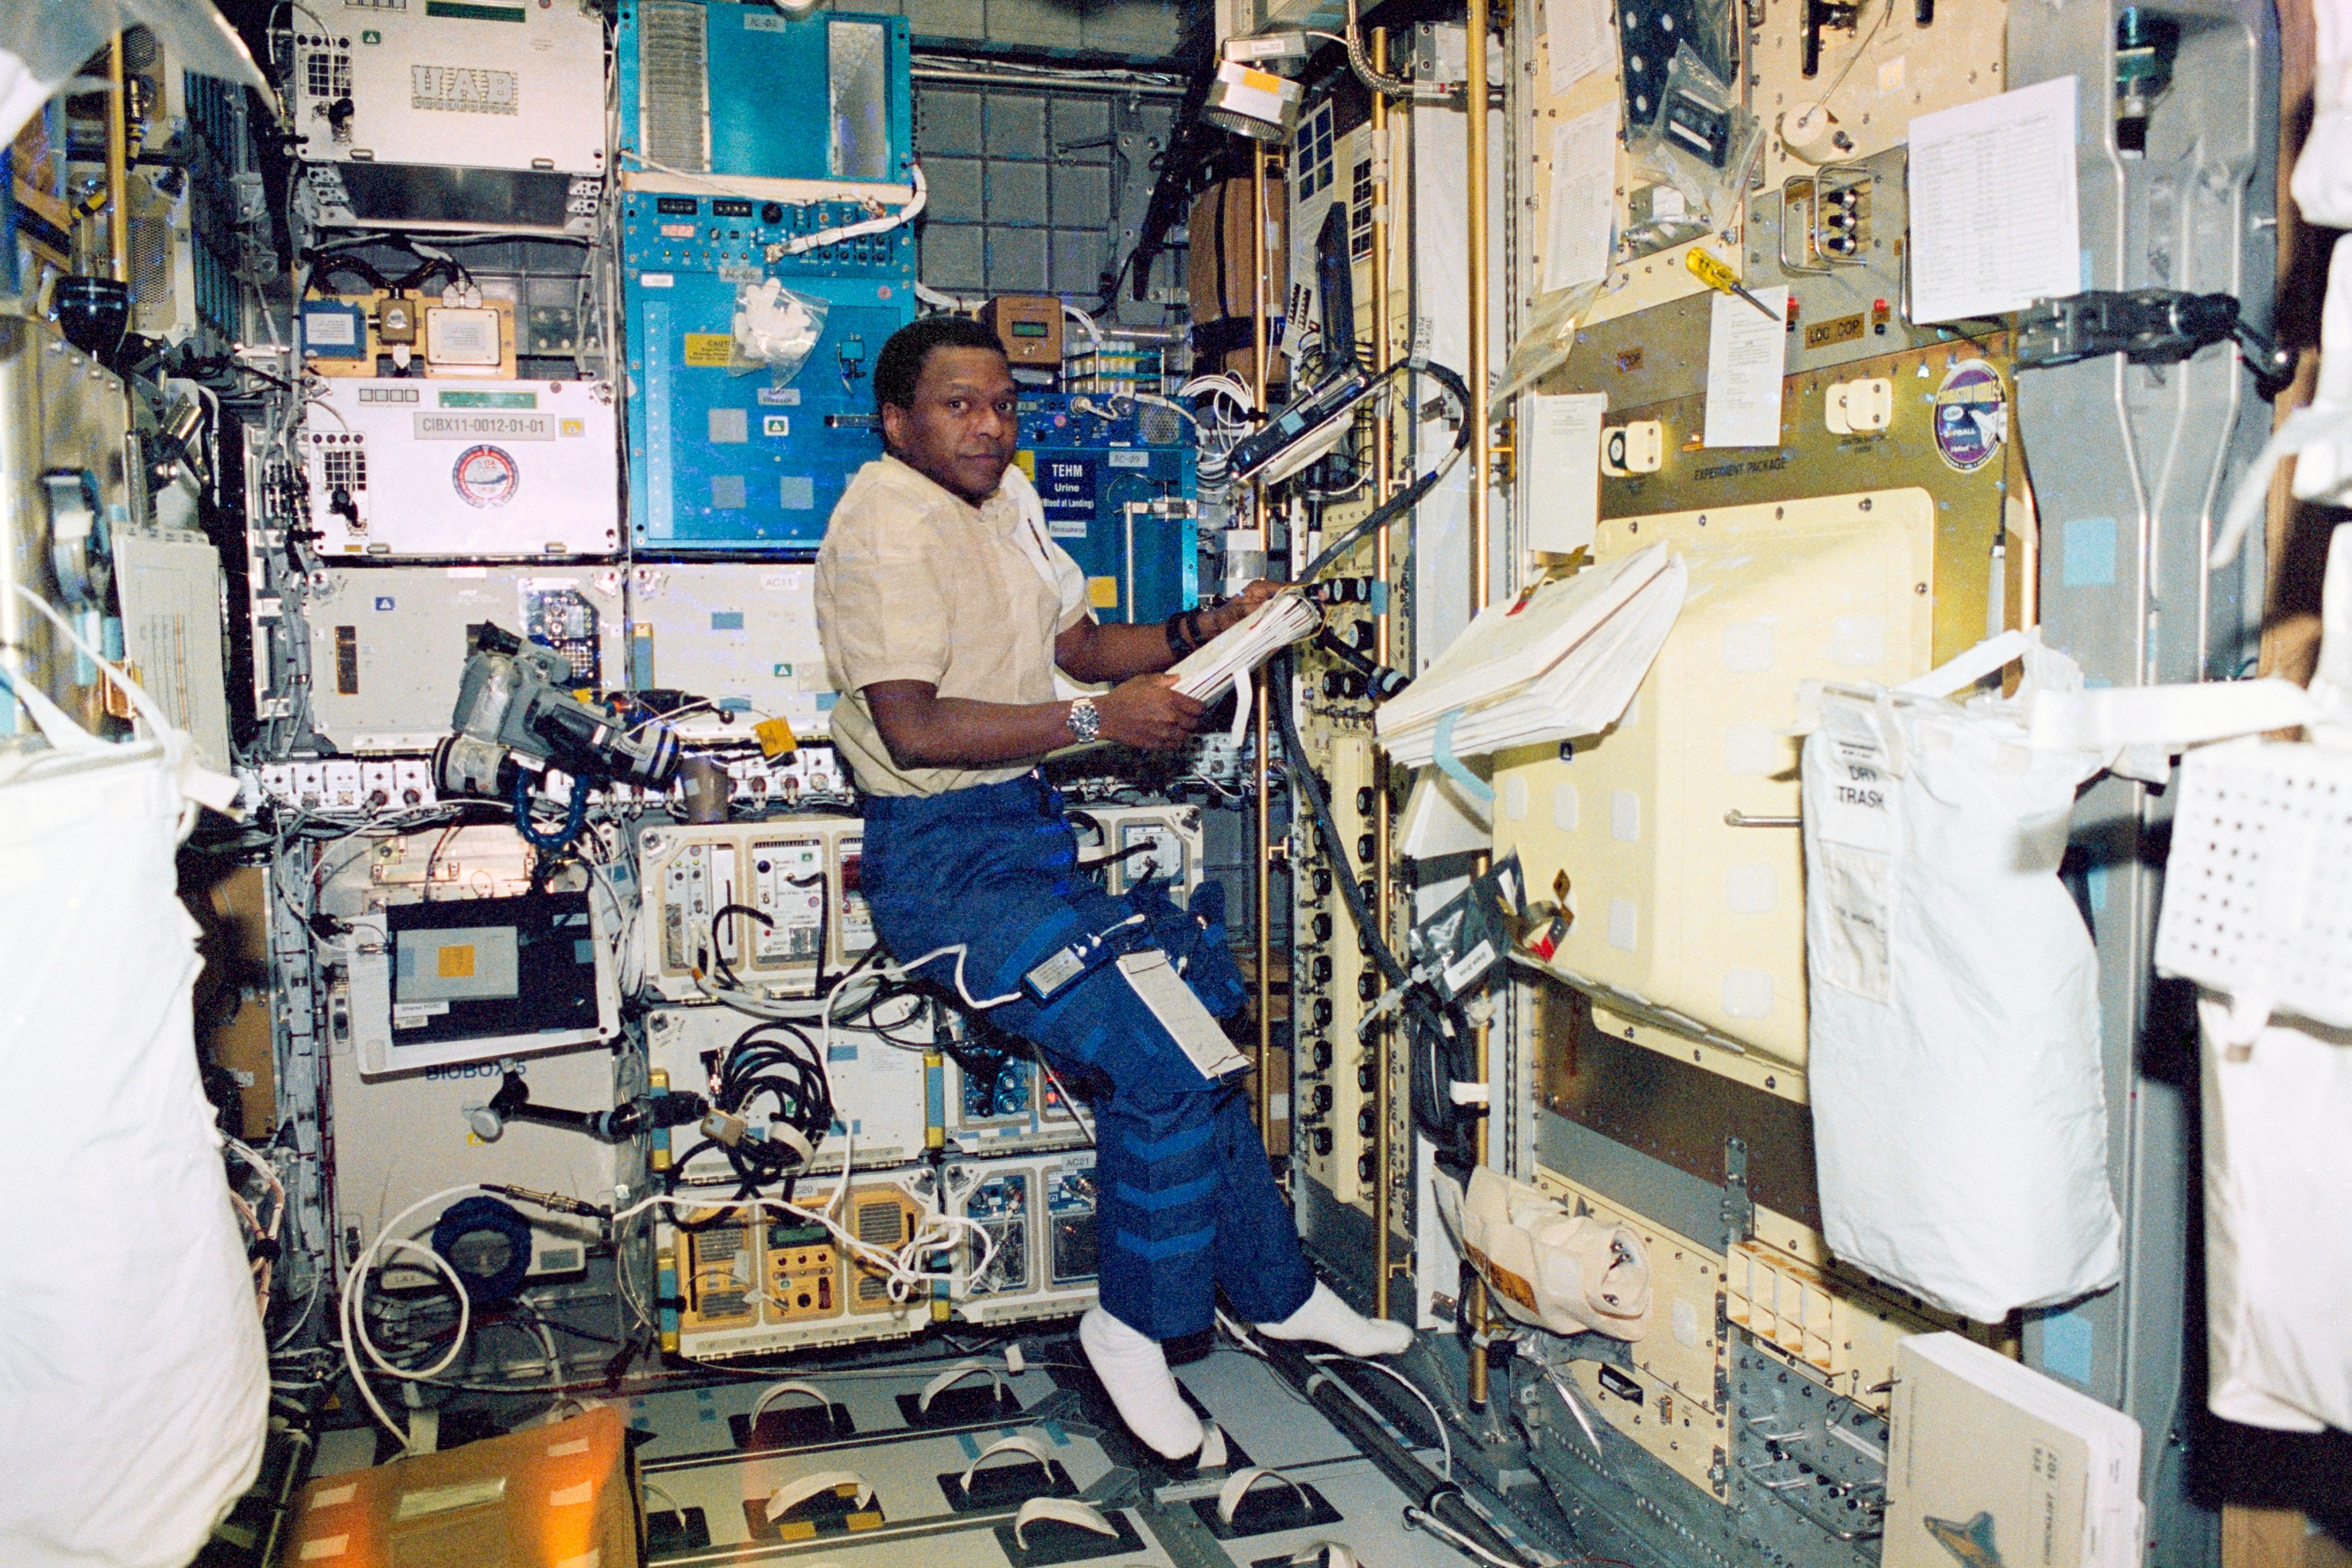 Astronaut Michael Anderson Checking Procedures on STS-107